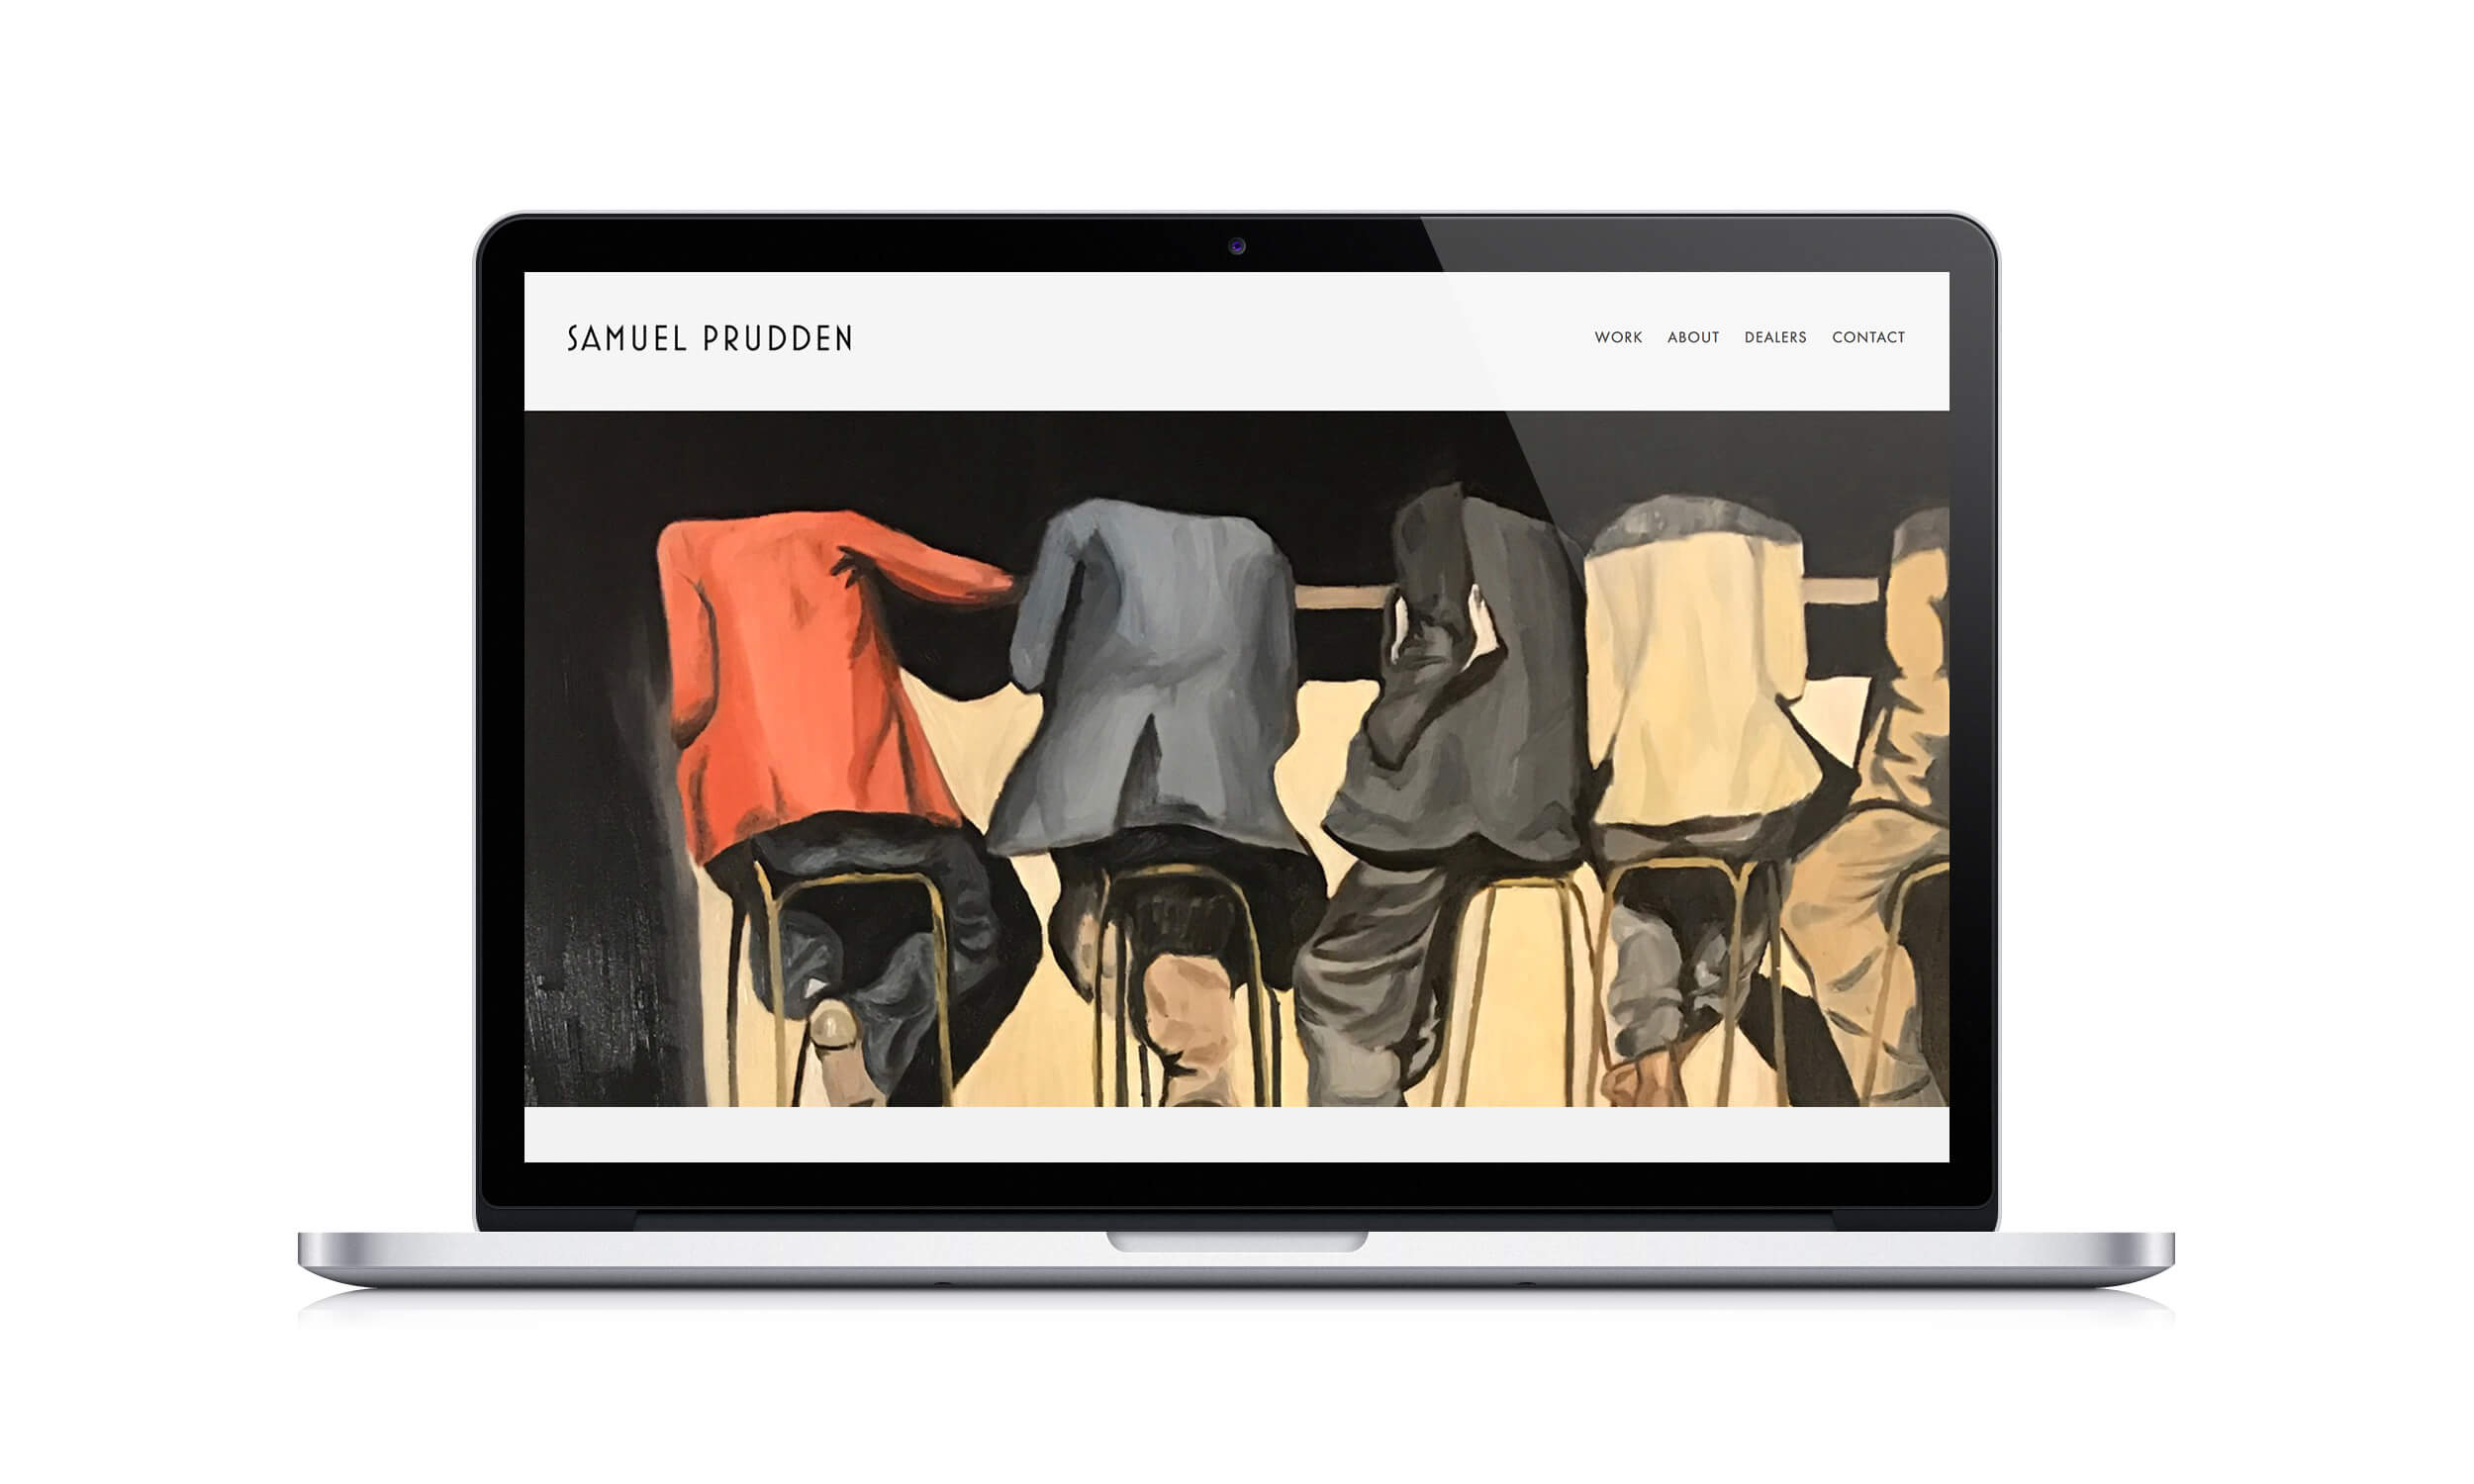 Samuel Prudden Squarespace Website Design by The Qurious Effect